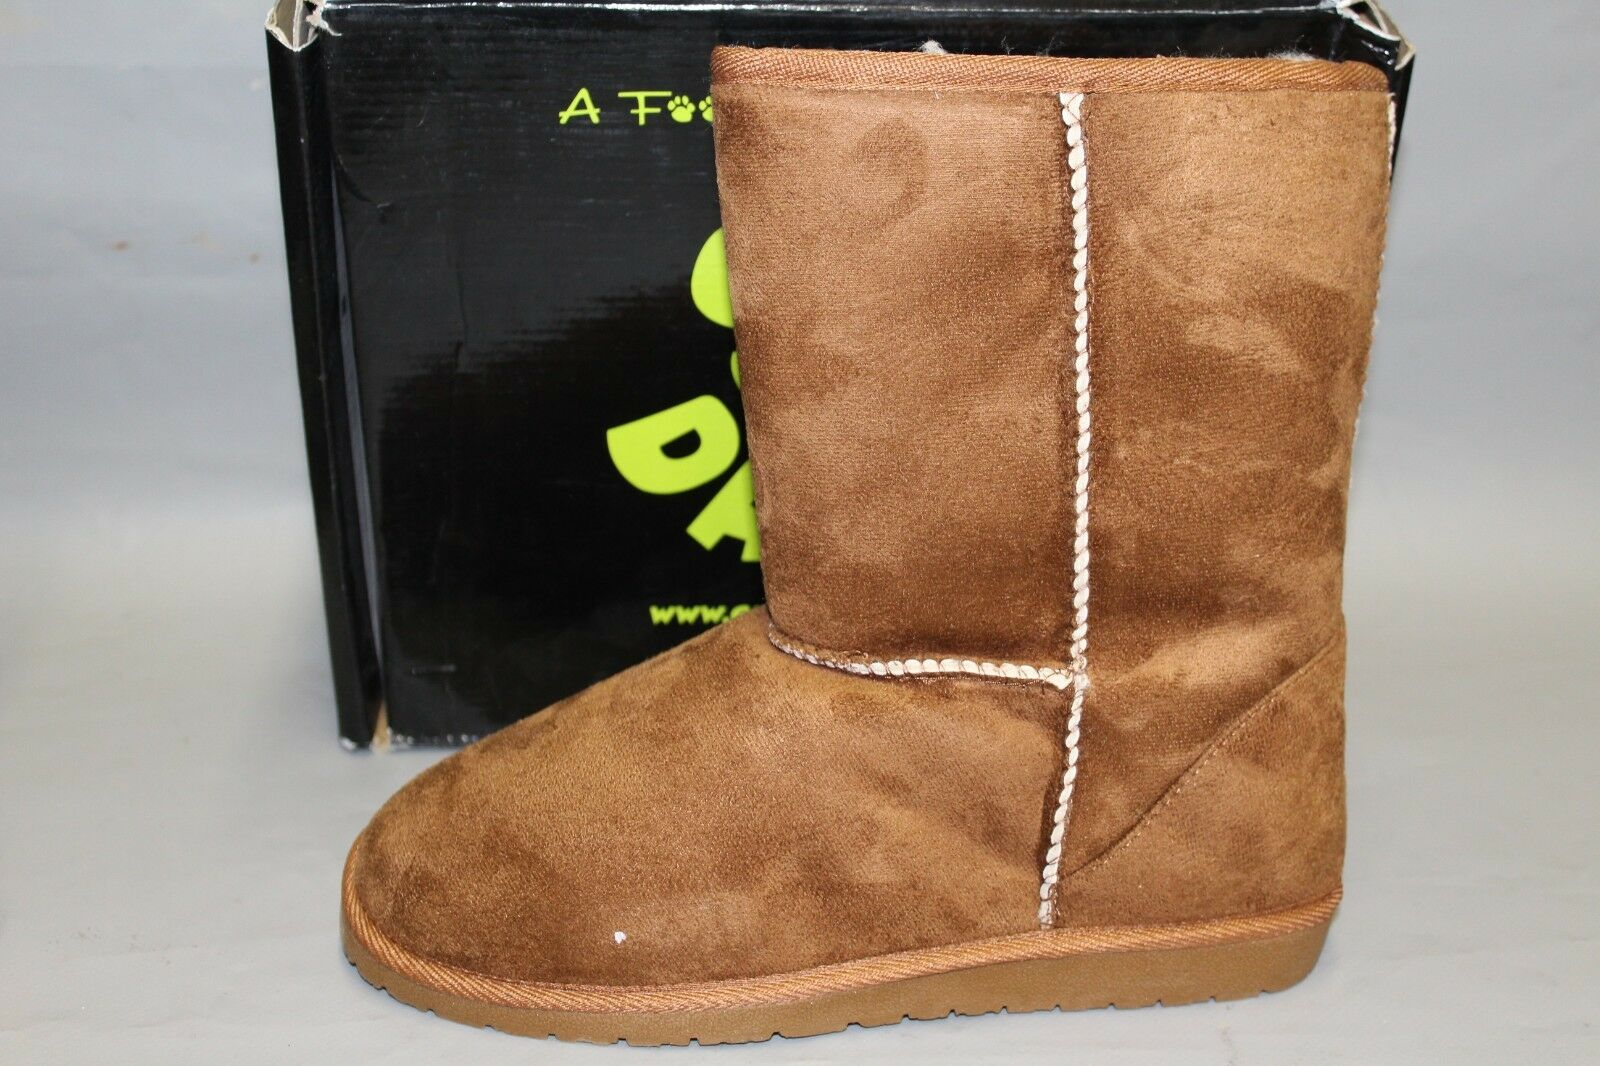 NEW Women's Dawgs US Size 7 Medium Chestnut Micro-Fibre Outer Warm Winter Boot